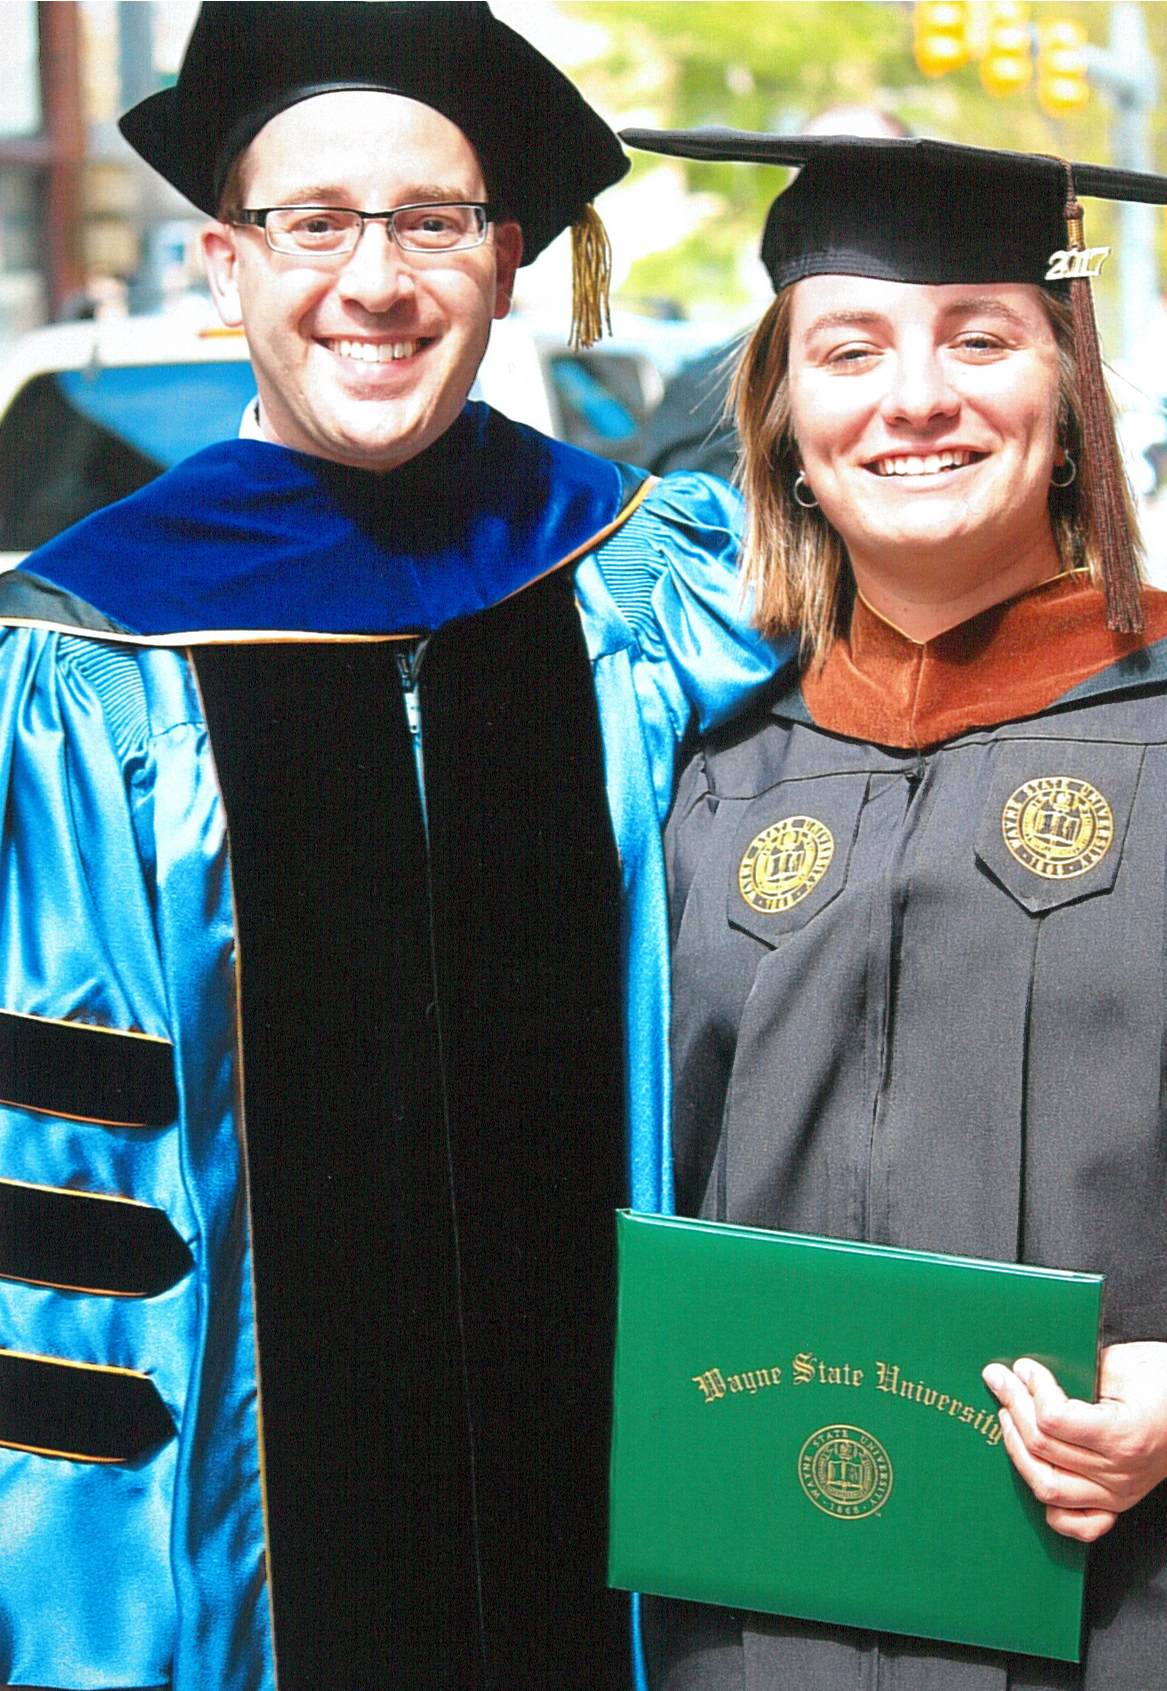 Jordan Clark, right, with Associate Professor Joshua S. Duchan